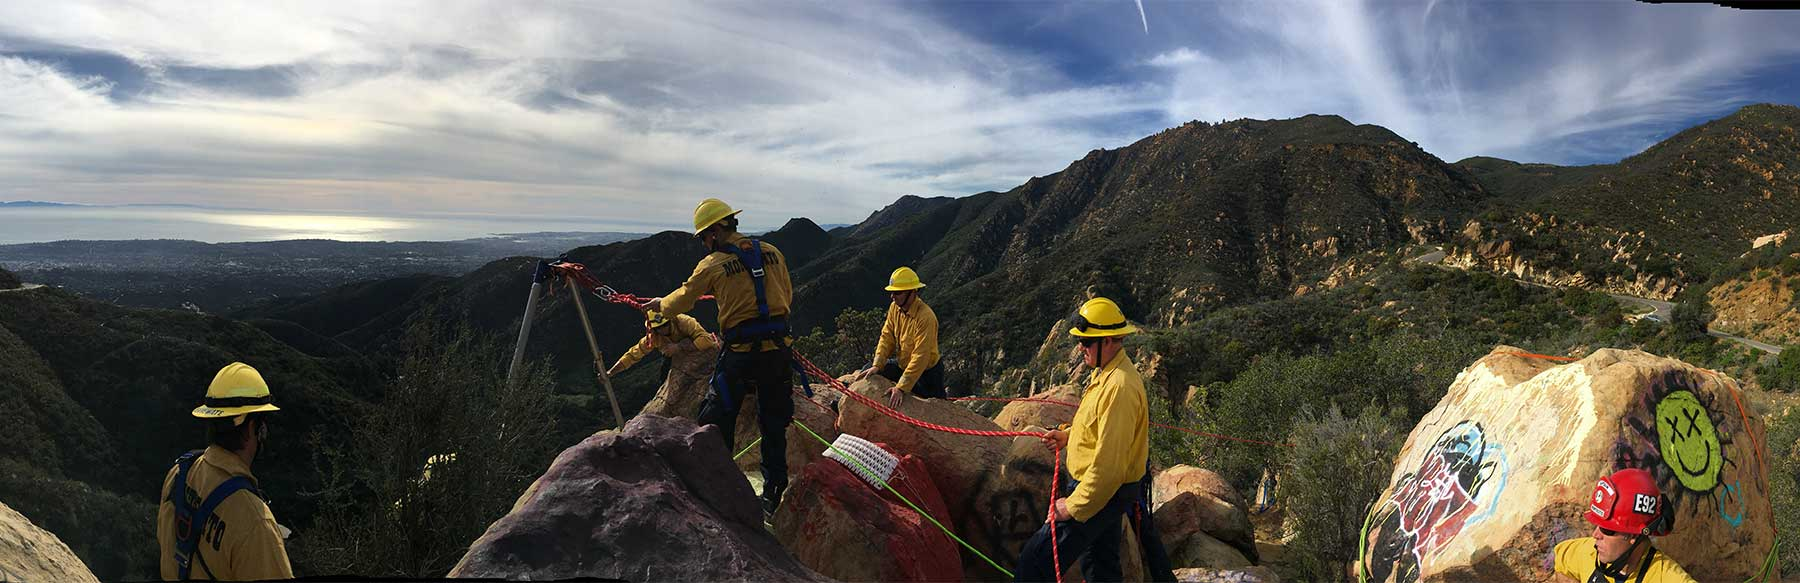 mountain rescue exercise